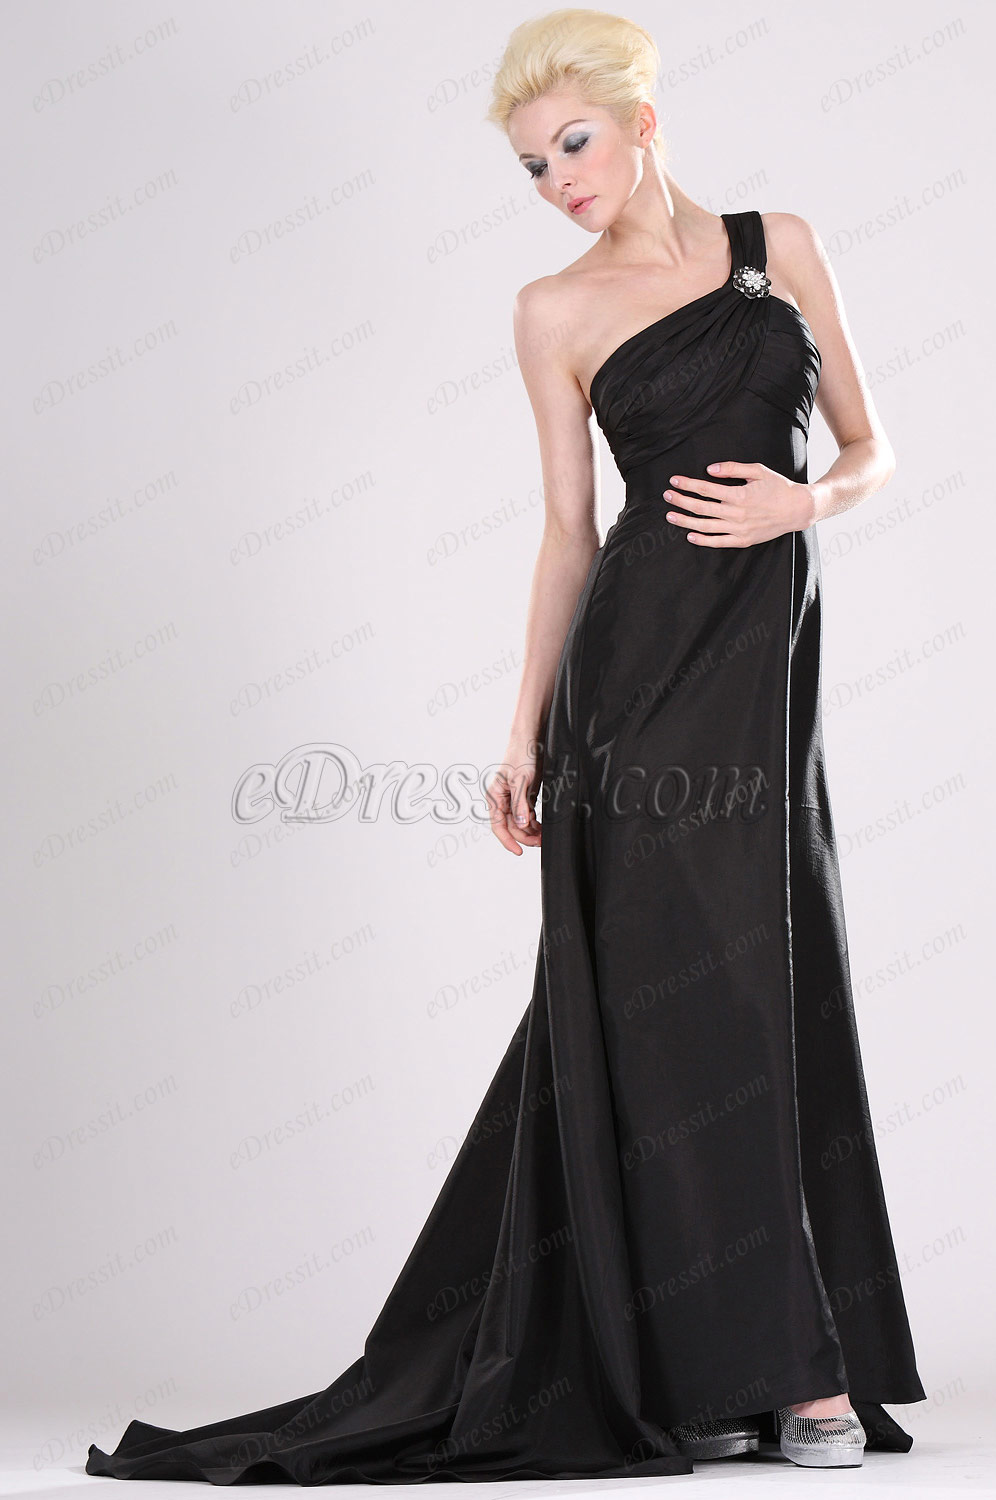 Clearance Sale! eDressit One-shoulder Black Prom Gown--Plus Size (00103800b)